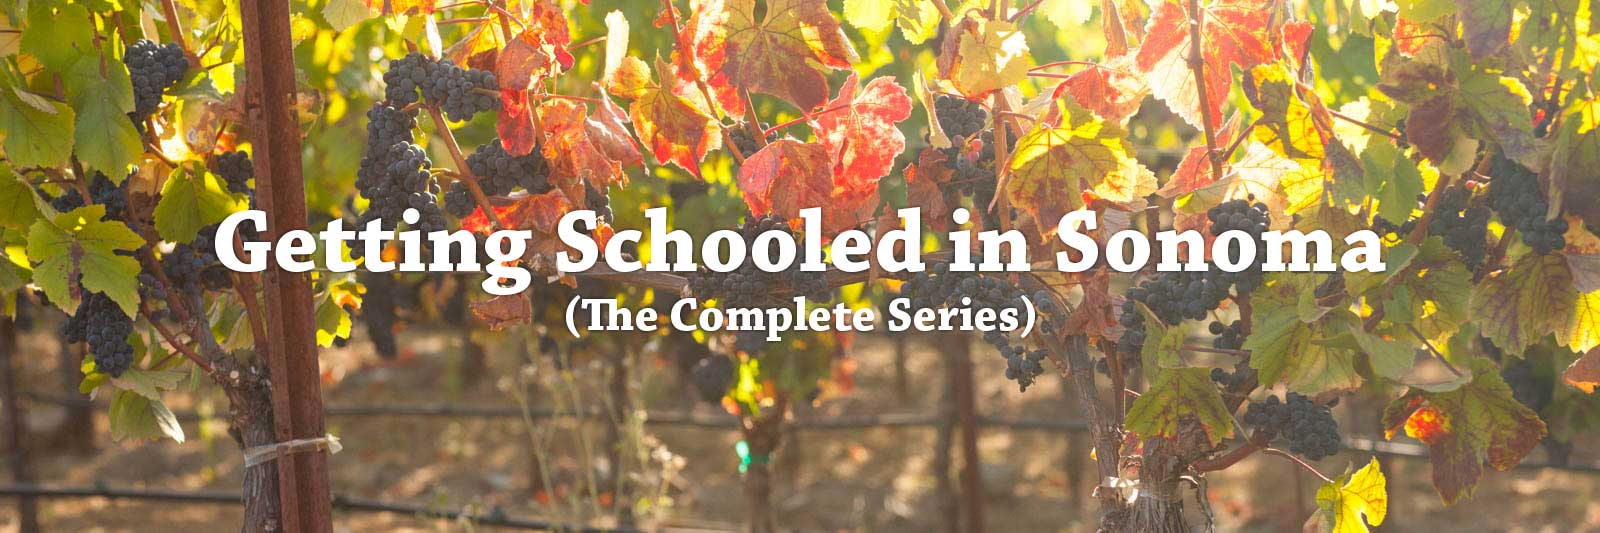 Getting Schooled in Sonoma – A Story by Kevin Day. ©Kevin Day